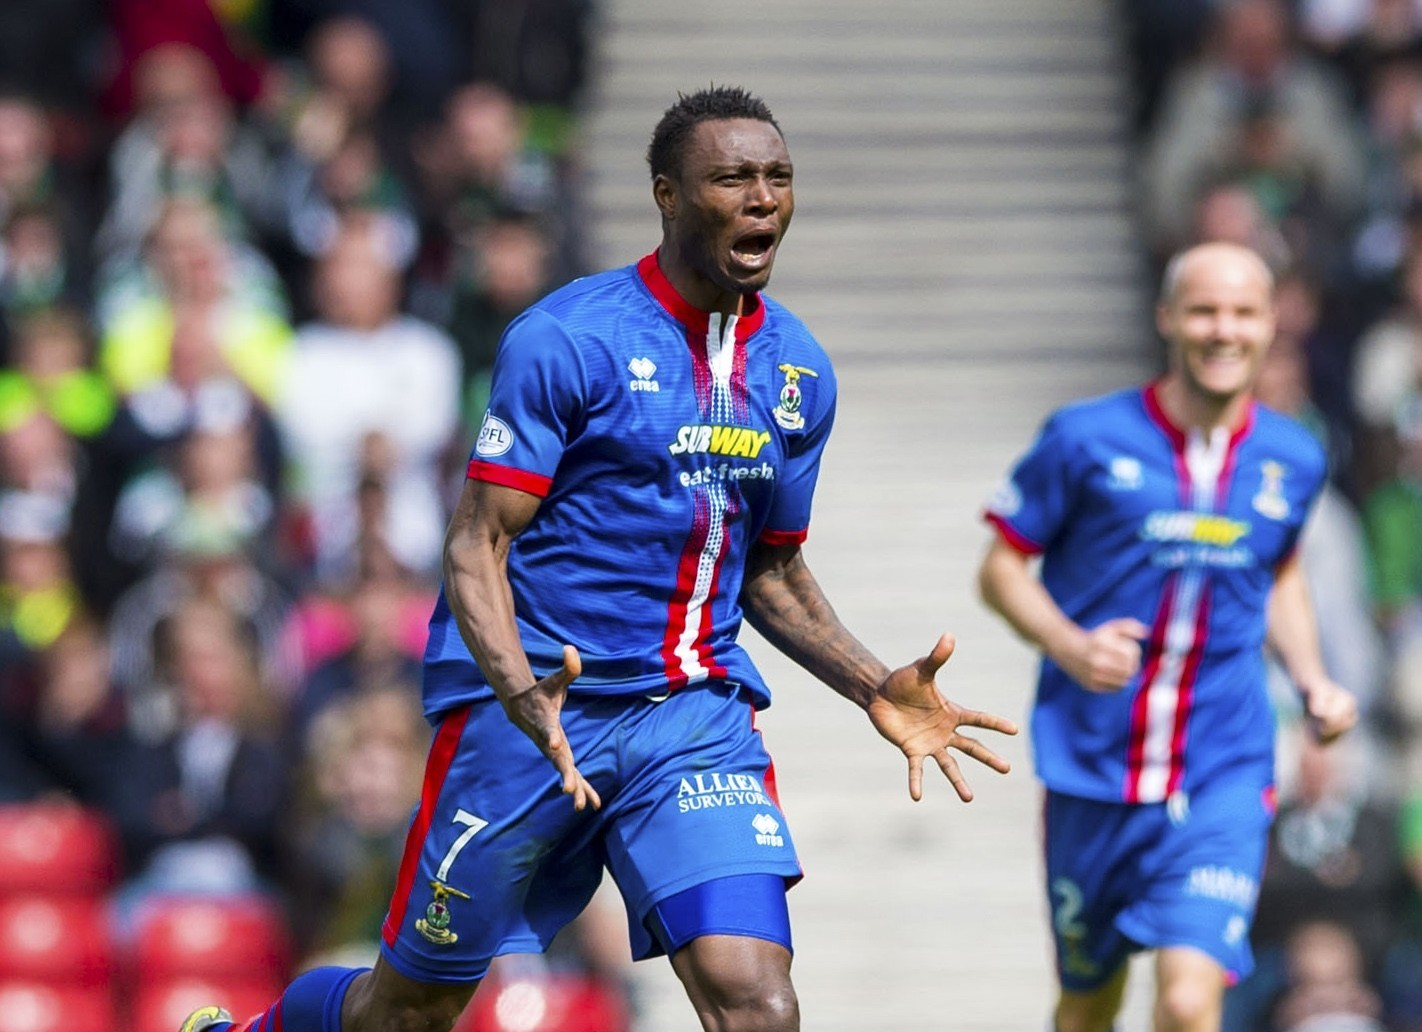 Could Edward Ofere return to Caley Thistle?